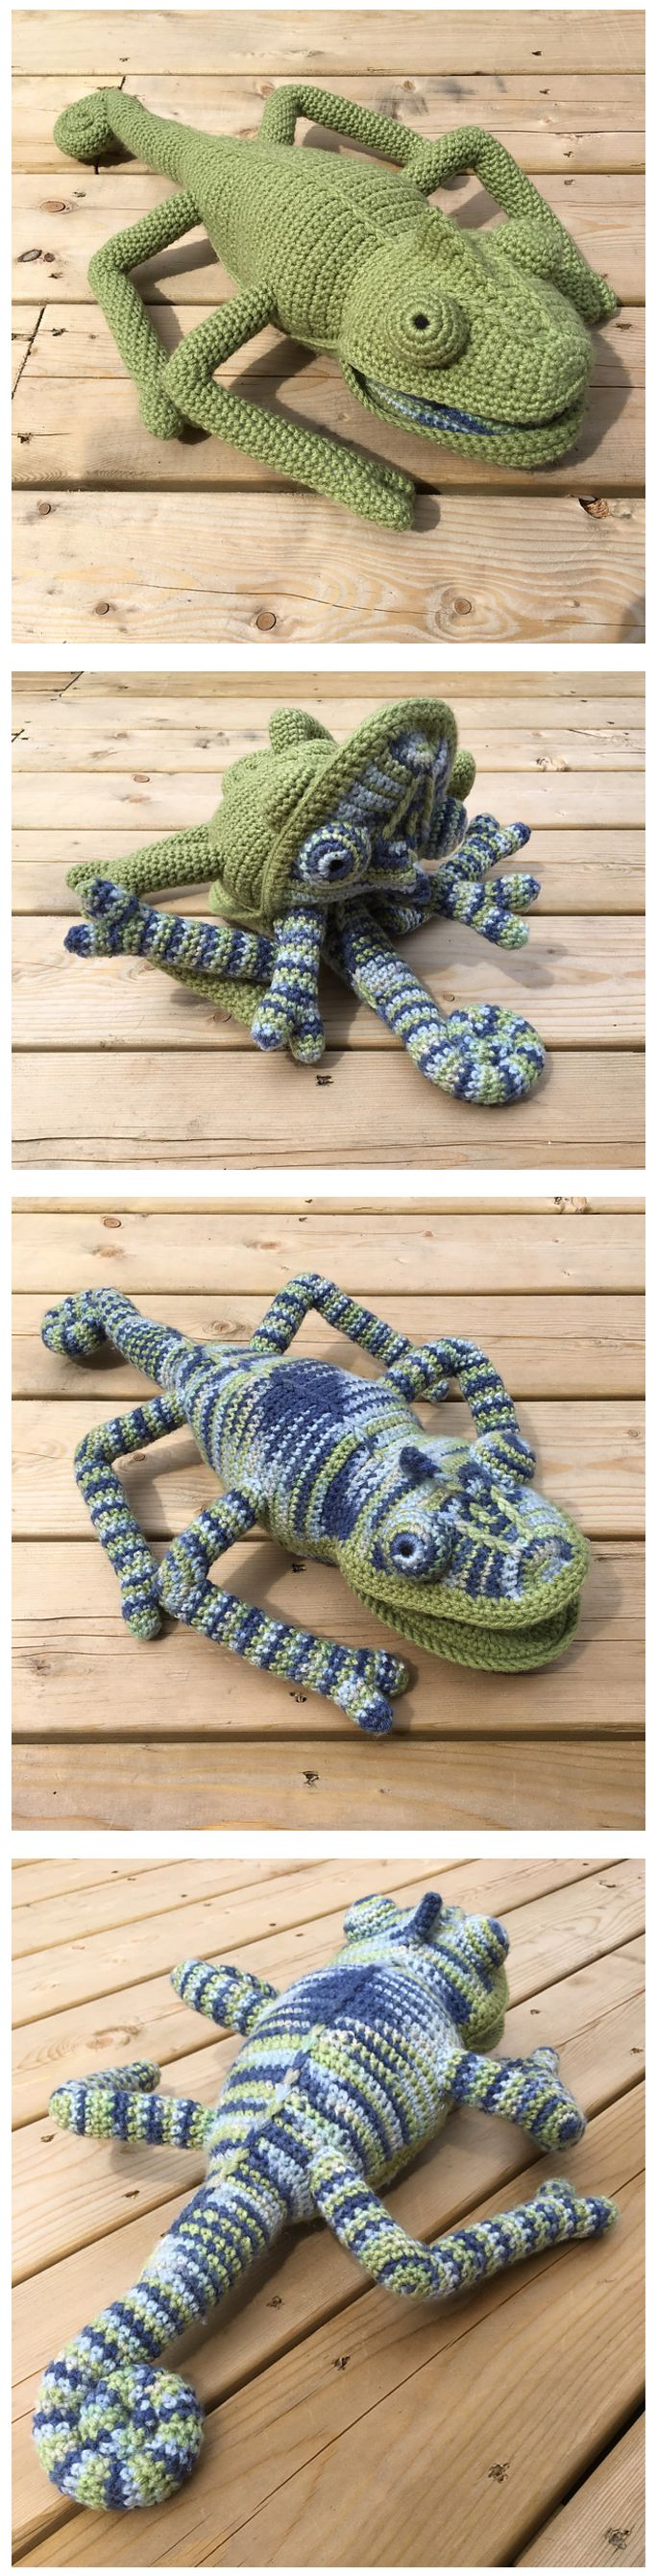 Crocheted transforming  chameleon by KylaRaay based on the pattern by Vanessa Monncie in the book Crocheted Wild Animals.